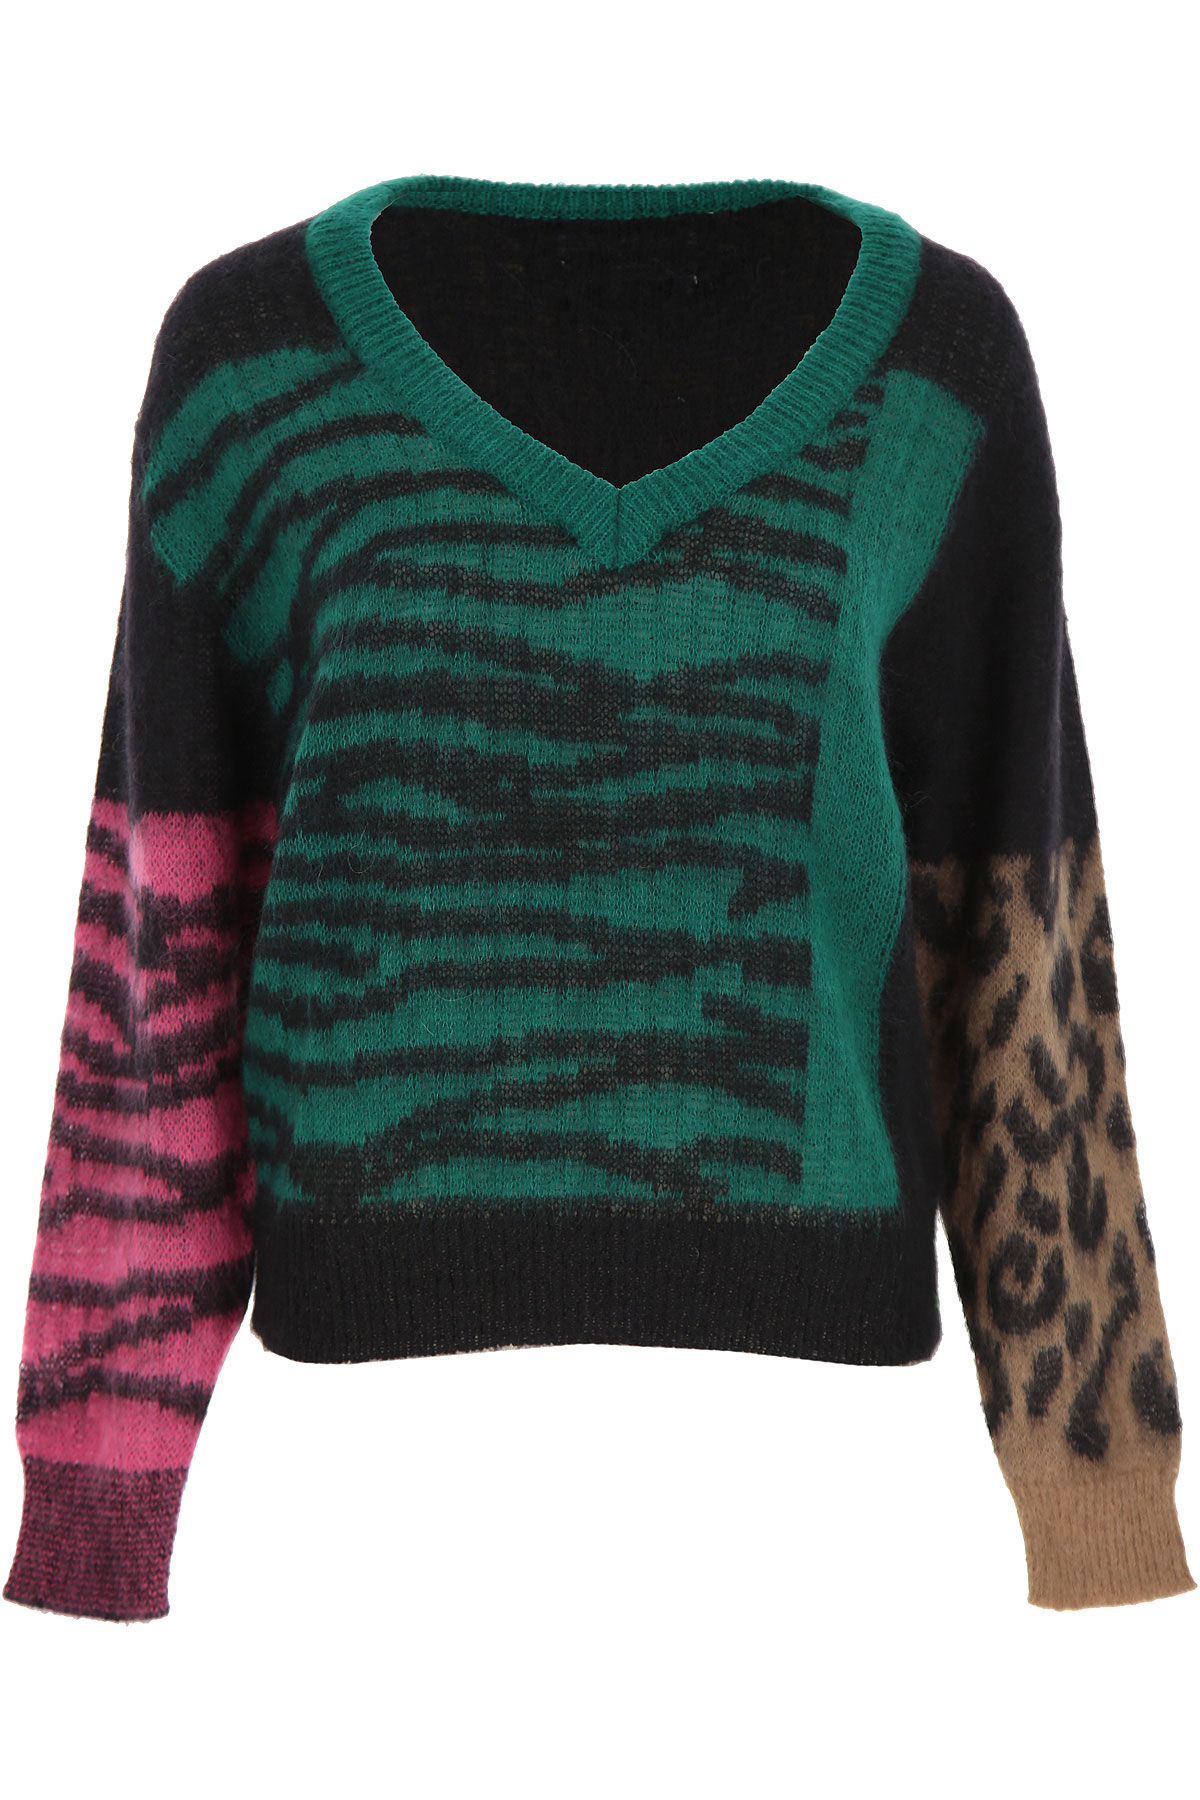 ESSENTIEL Antwerp Sweater for Women Jumper On Sale, Green, polyamide, 2019, 4